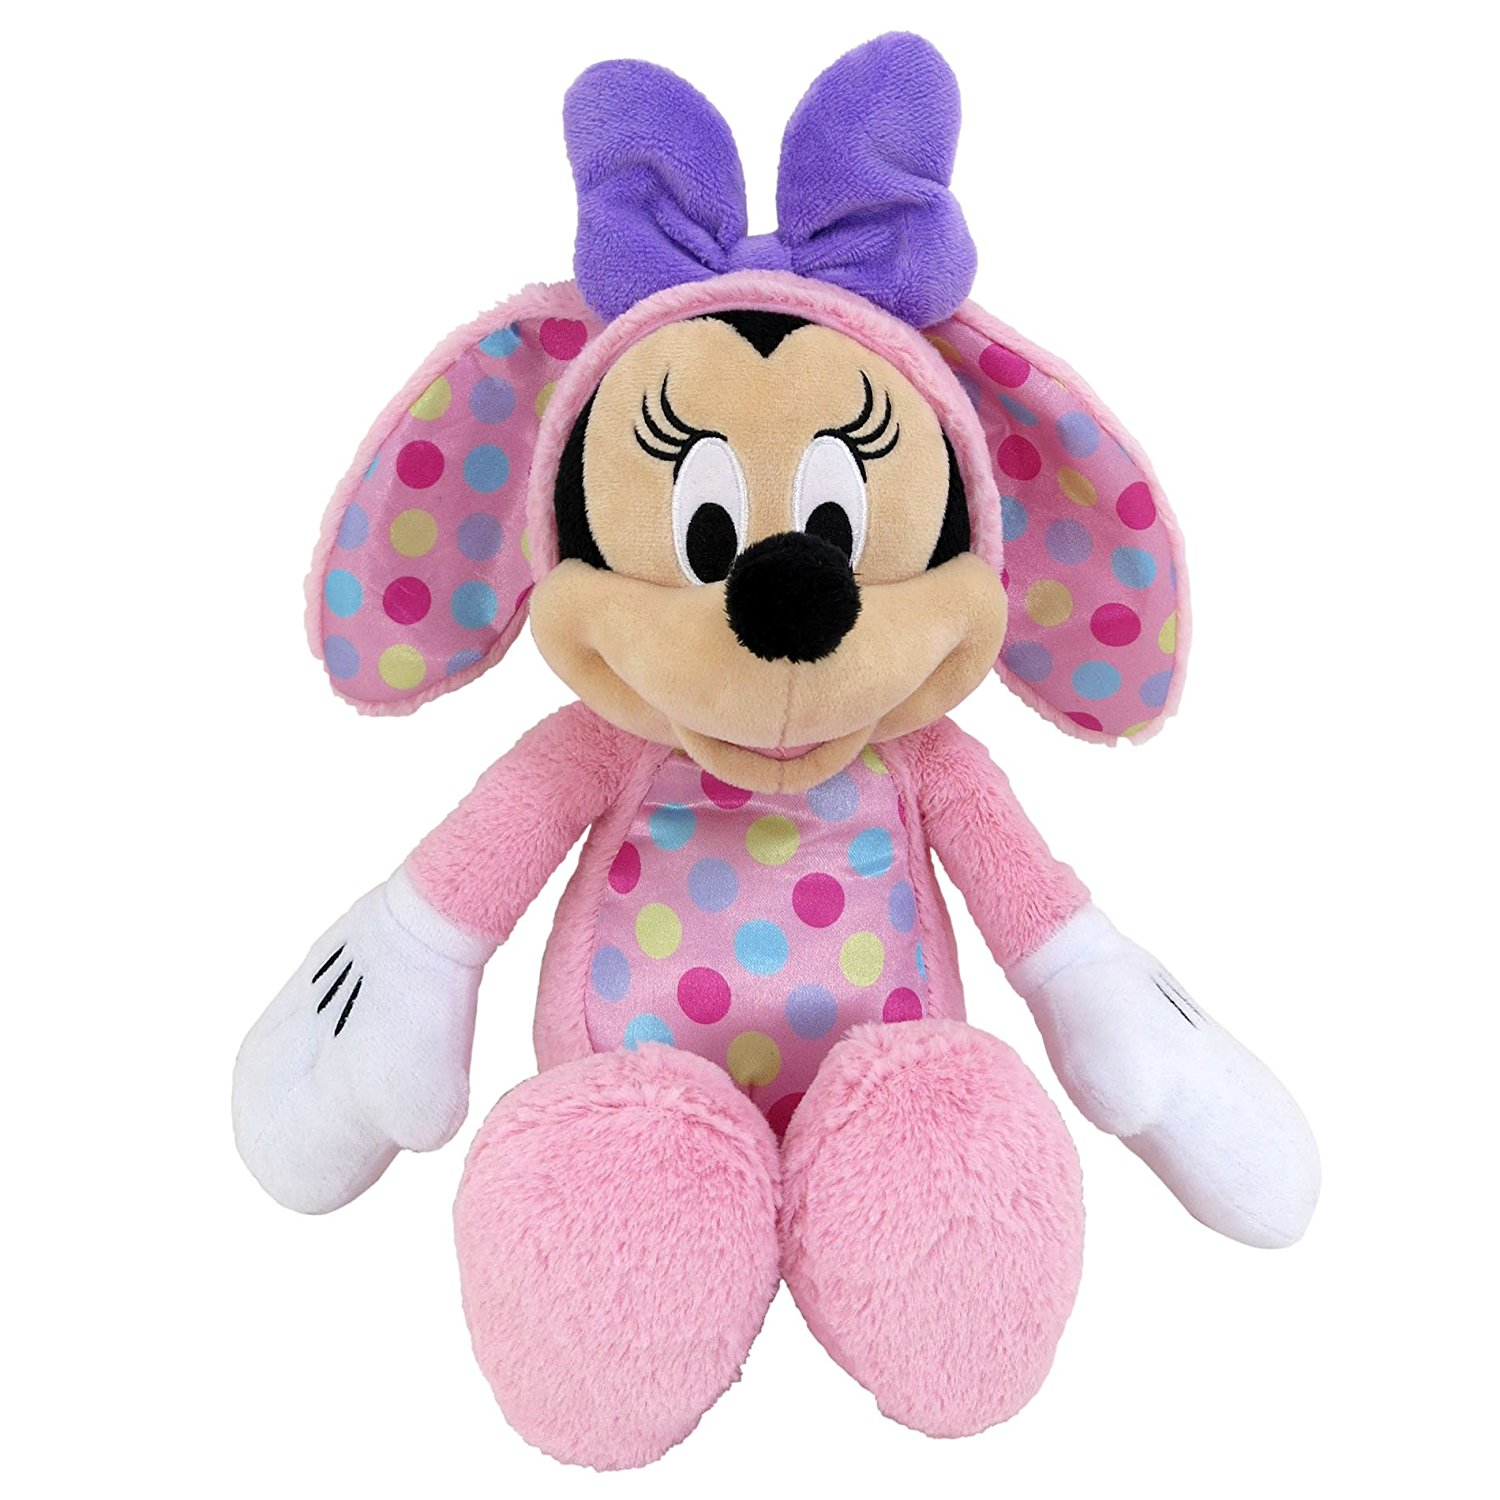 Disney Plush Pink Minnie Mouse as Easter Bunny